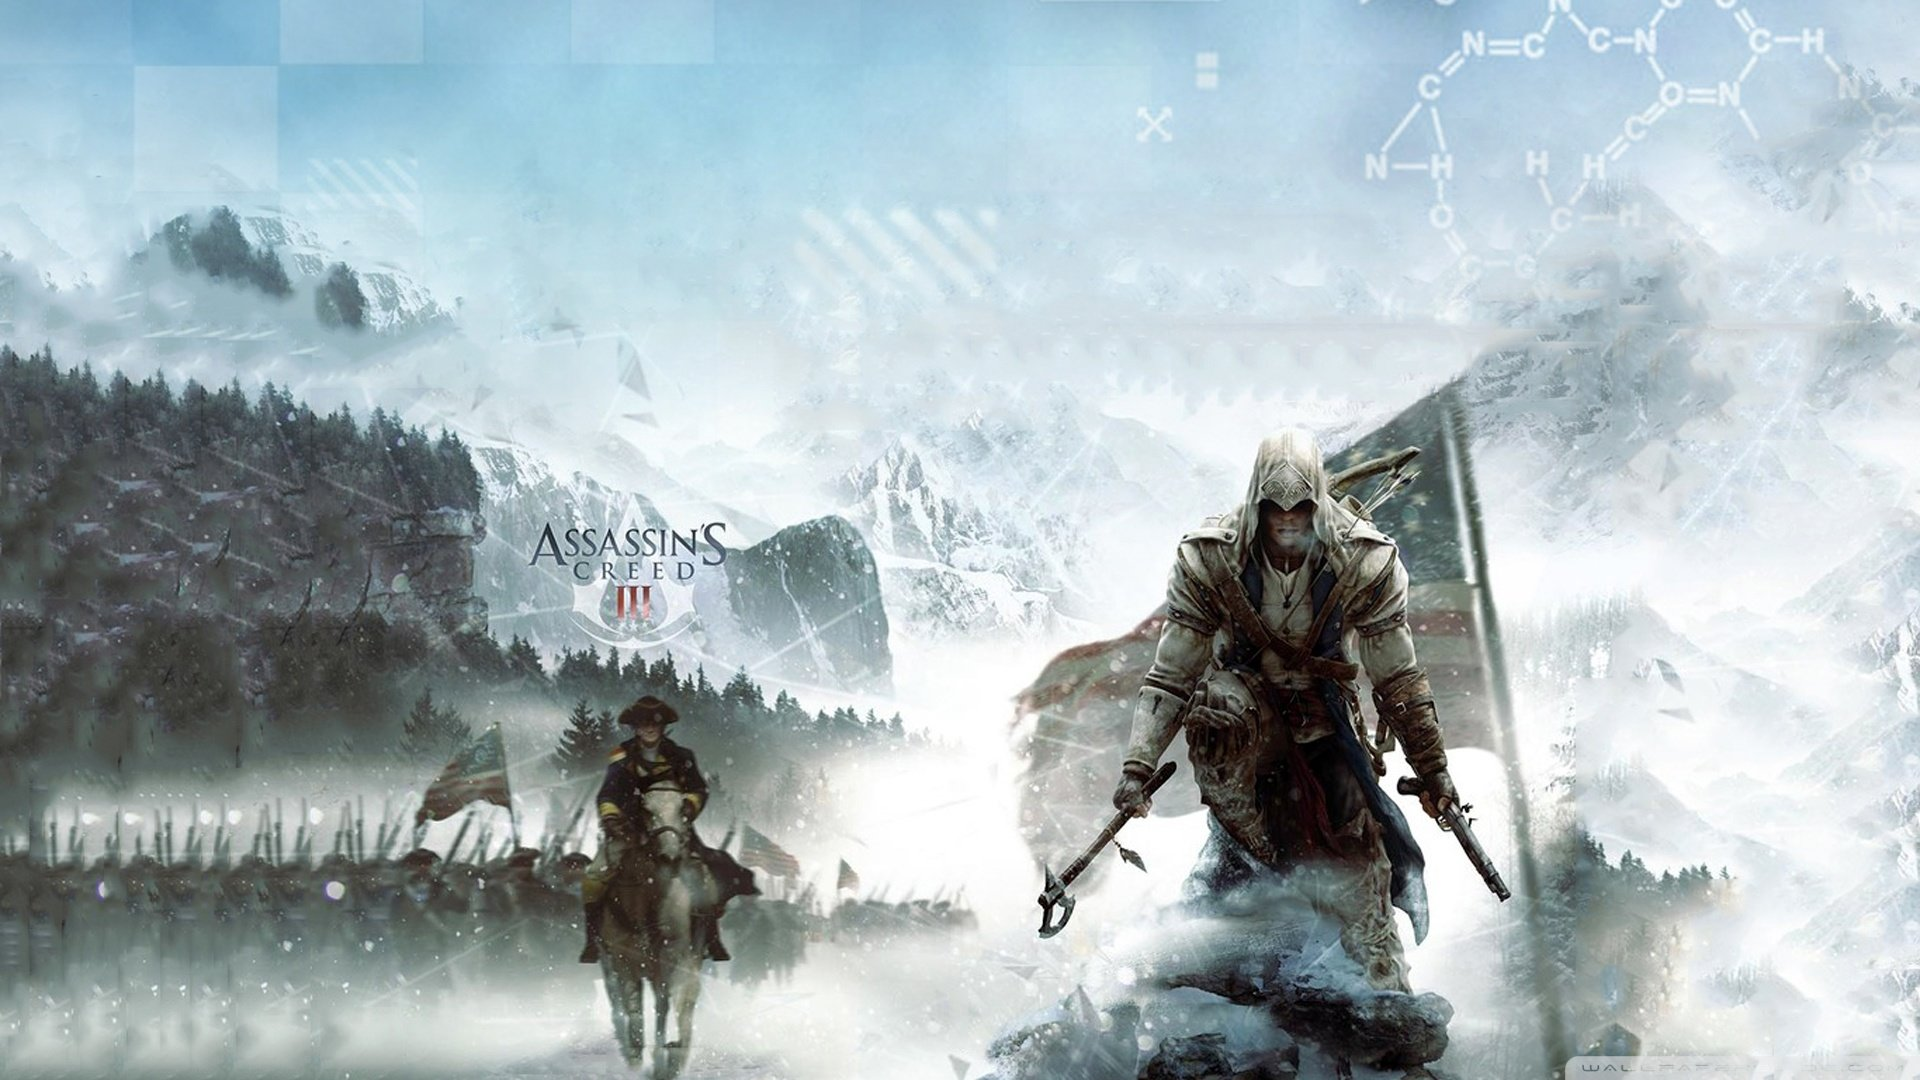 Best Assassin S Creed 3 Wallpaper Id 447218 For High Resolution Hd